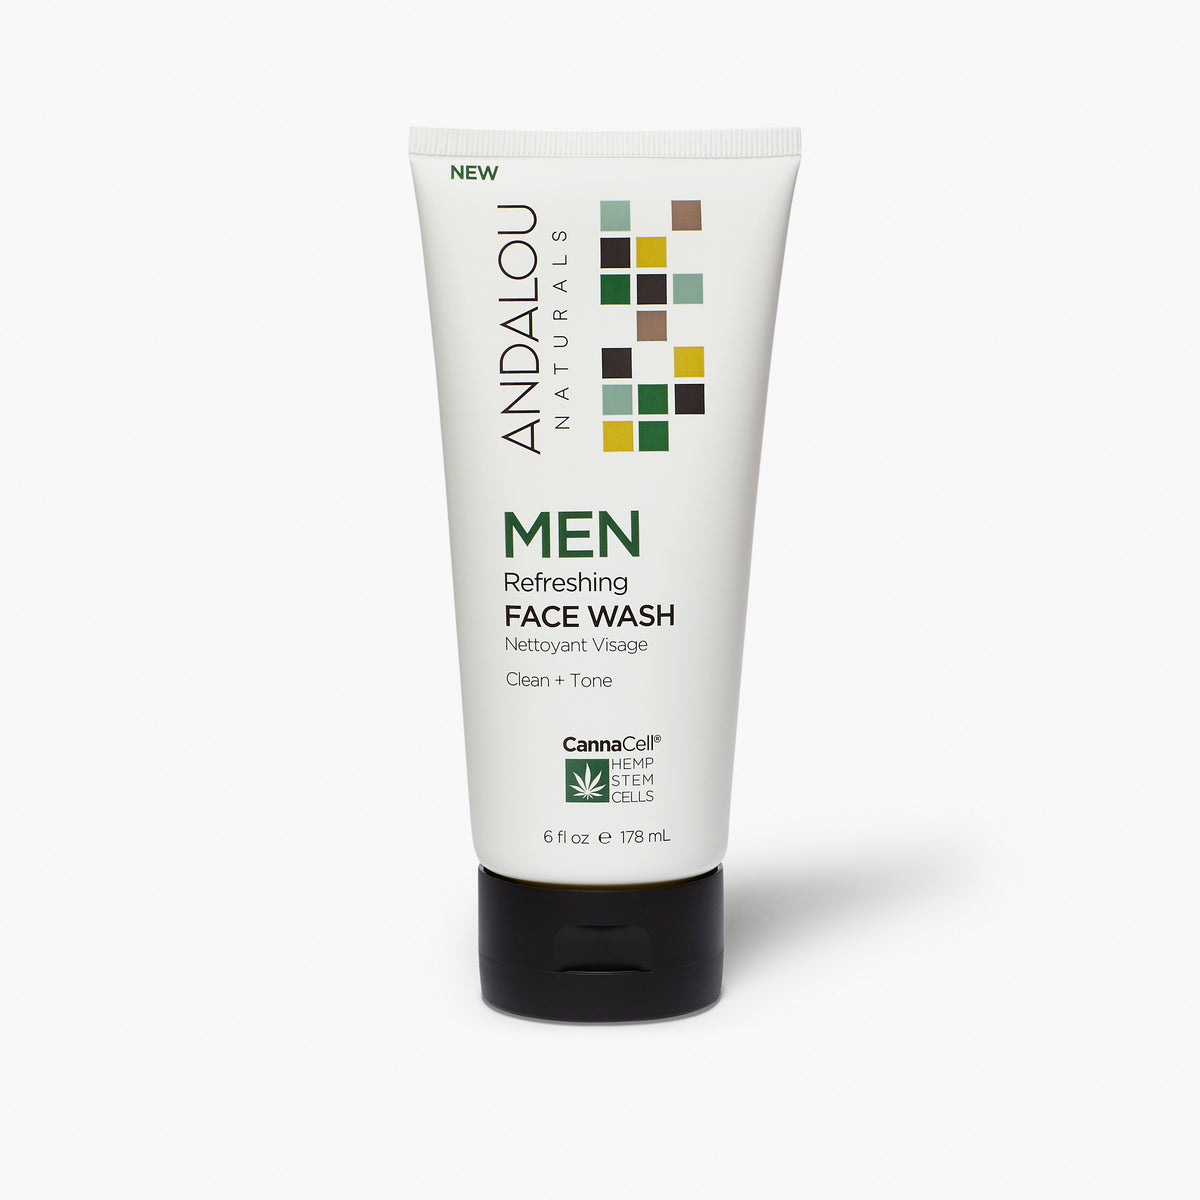 MEN Refreshing Face Wash - Andalou Naturals US